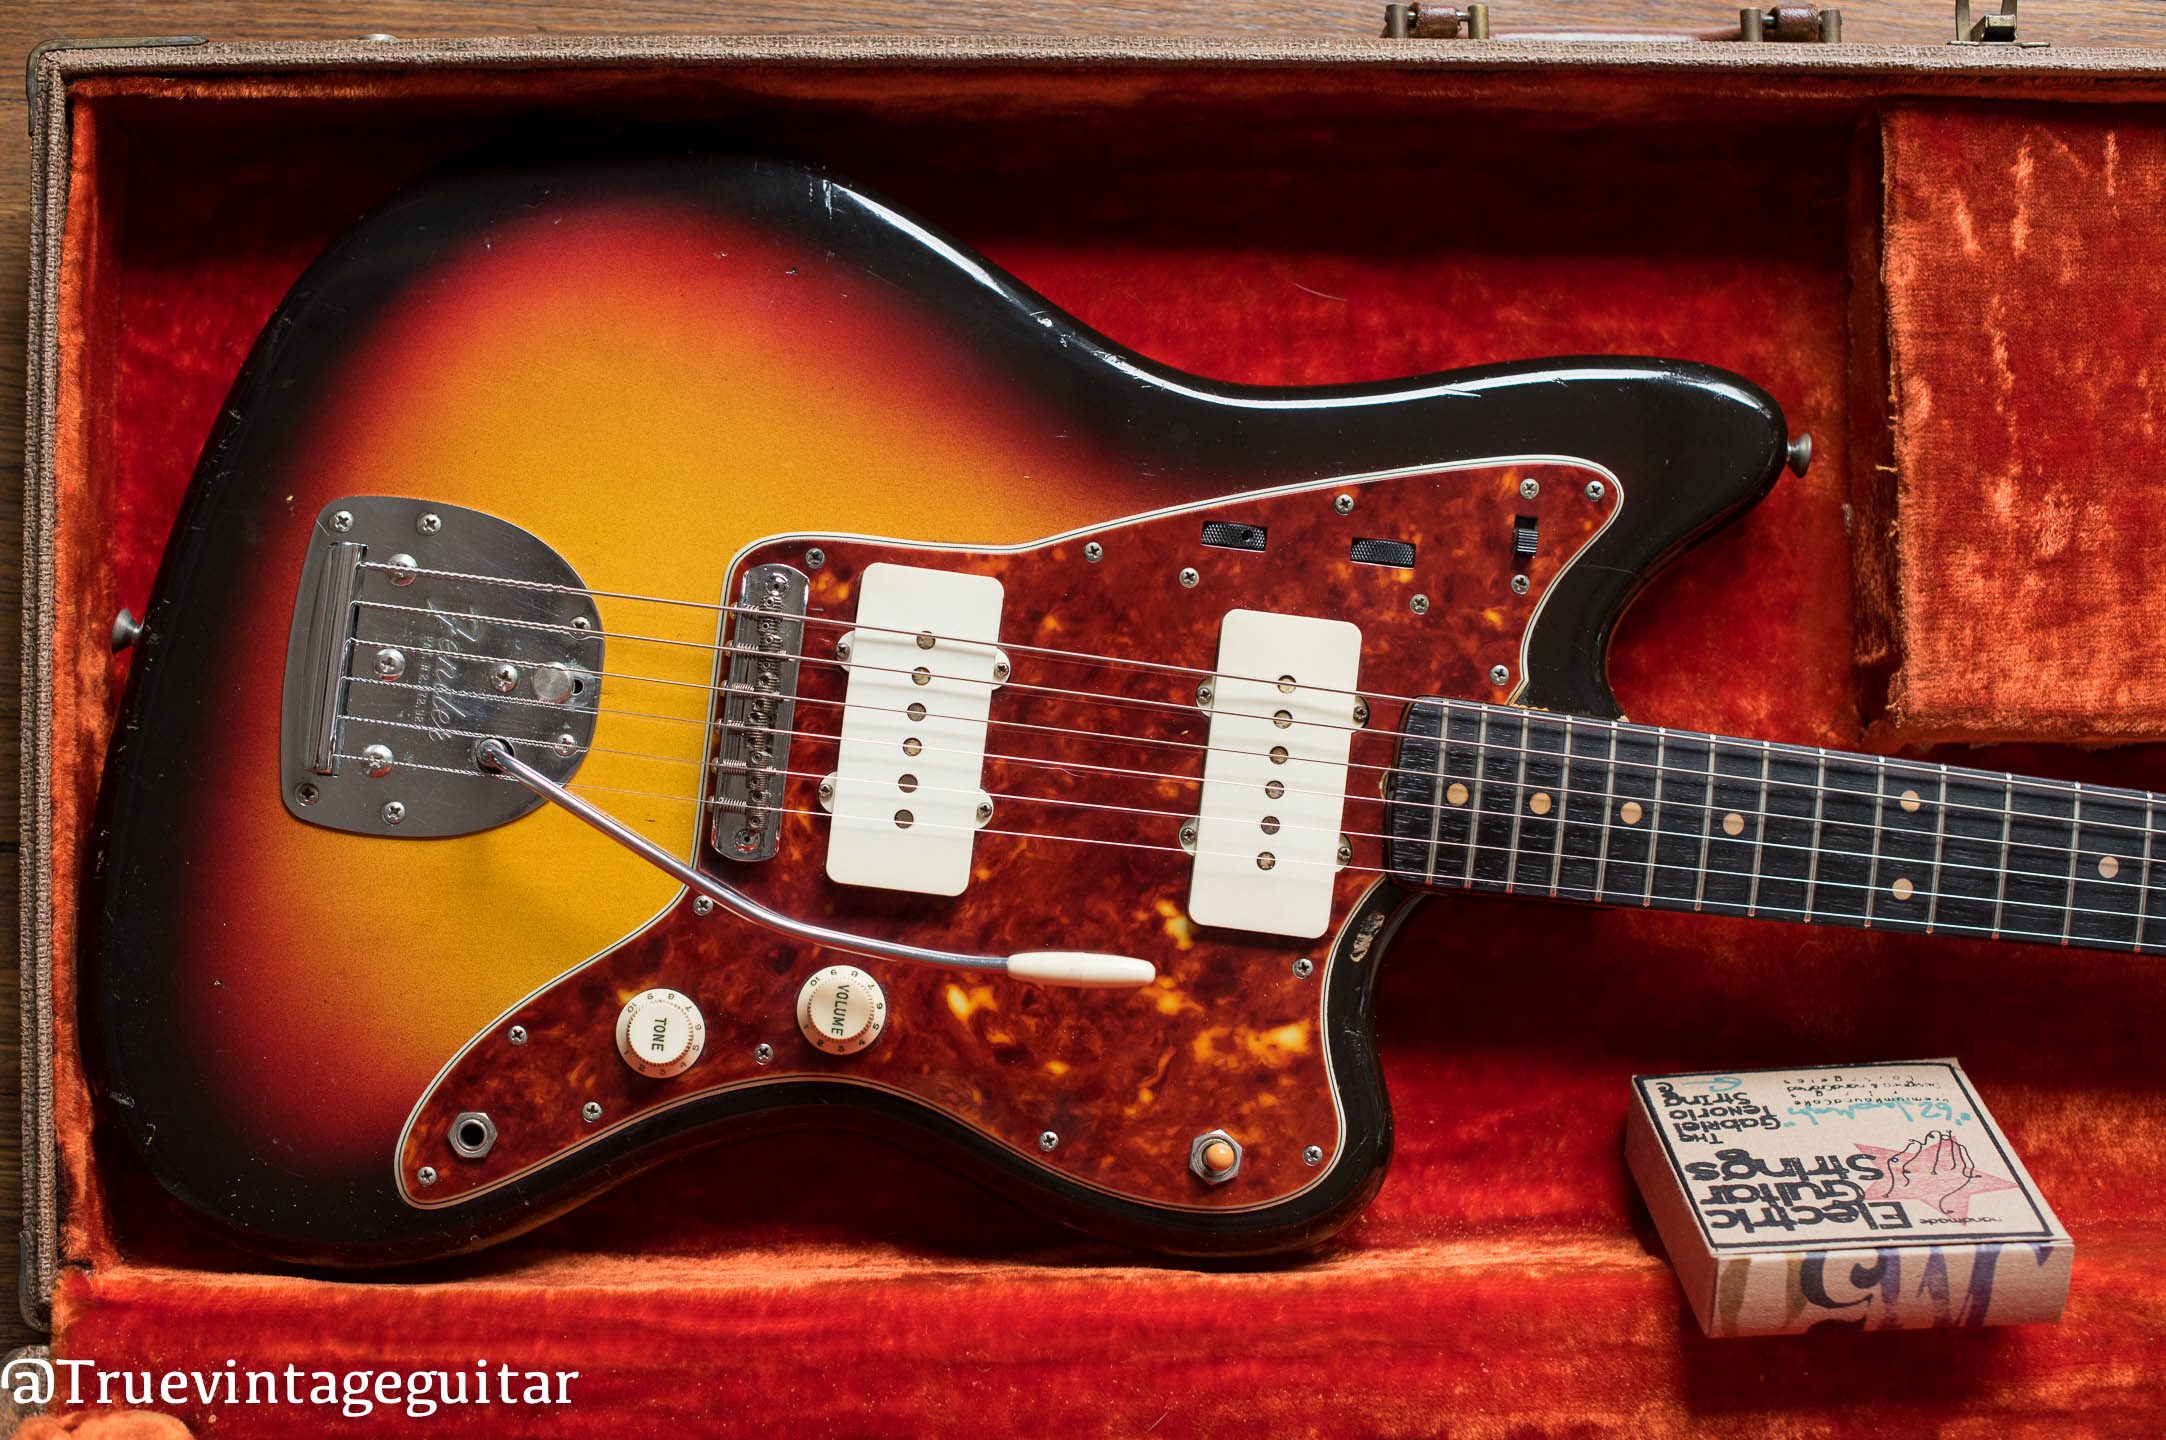 Where to sell vintage Fender Jazzmaster guitar